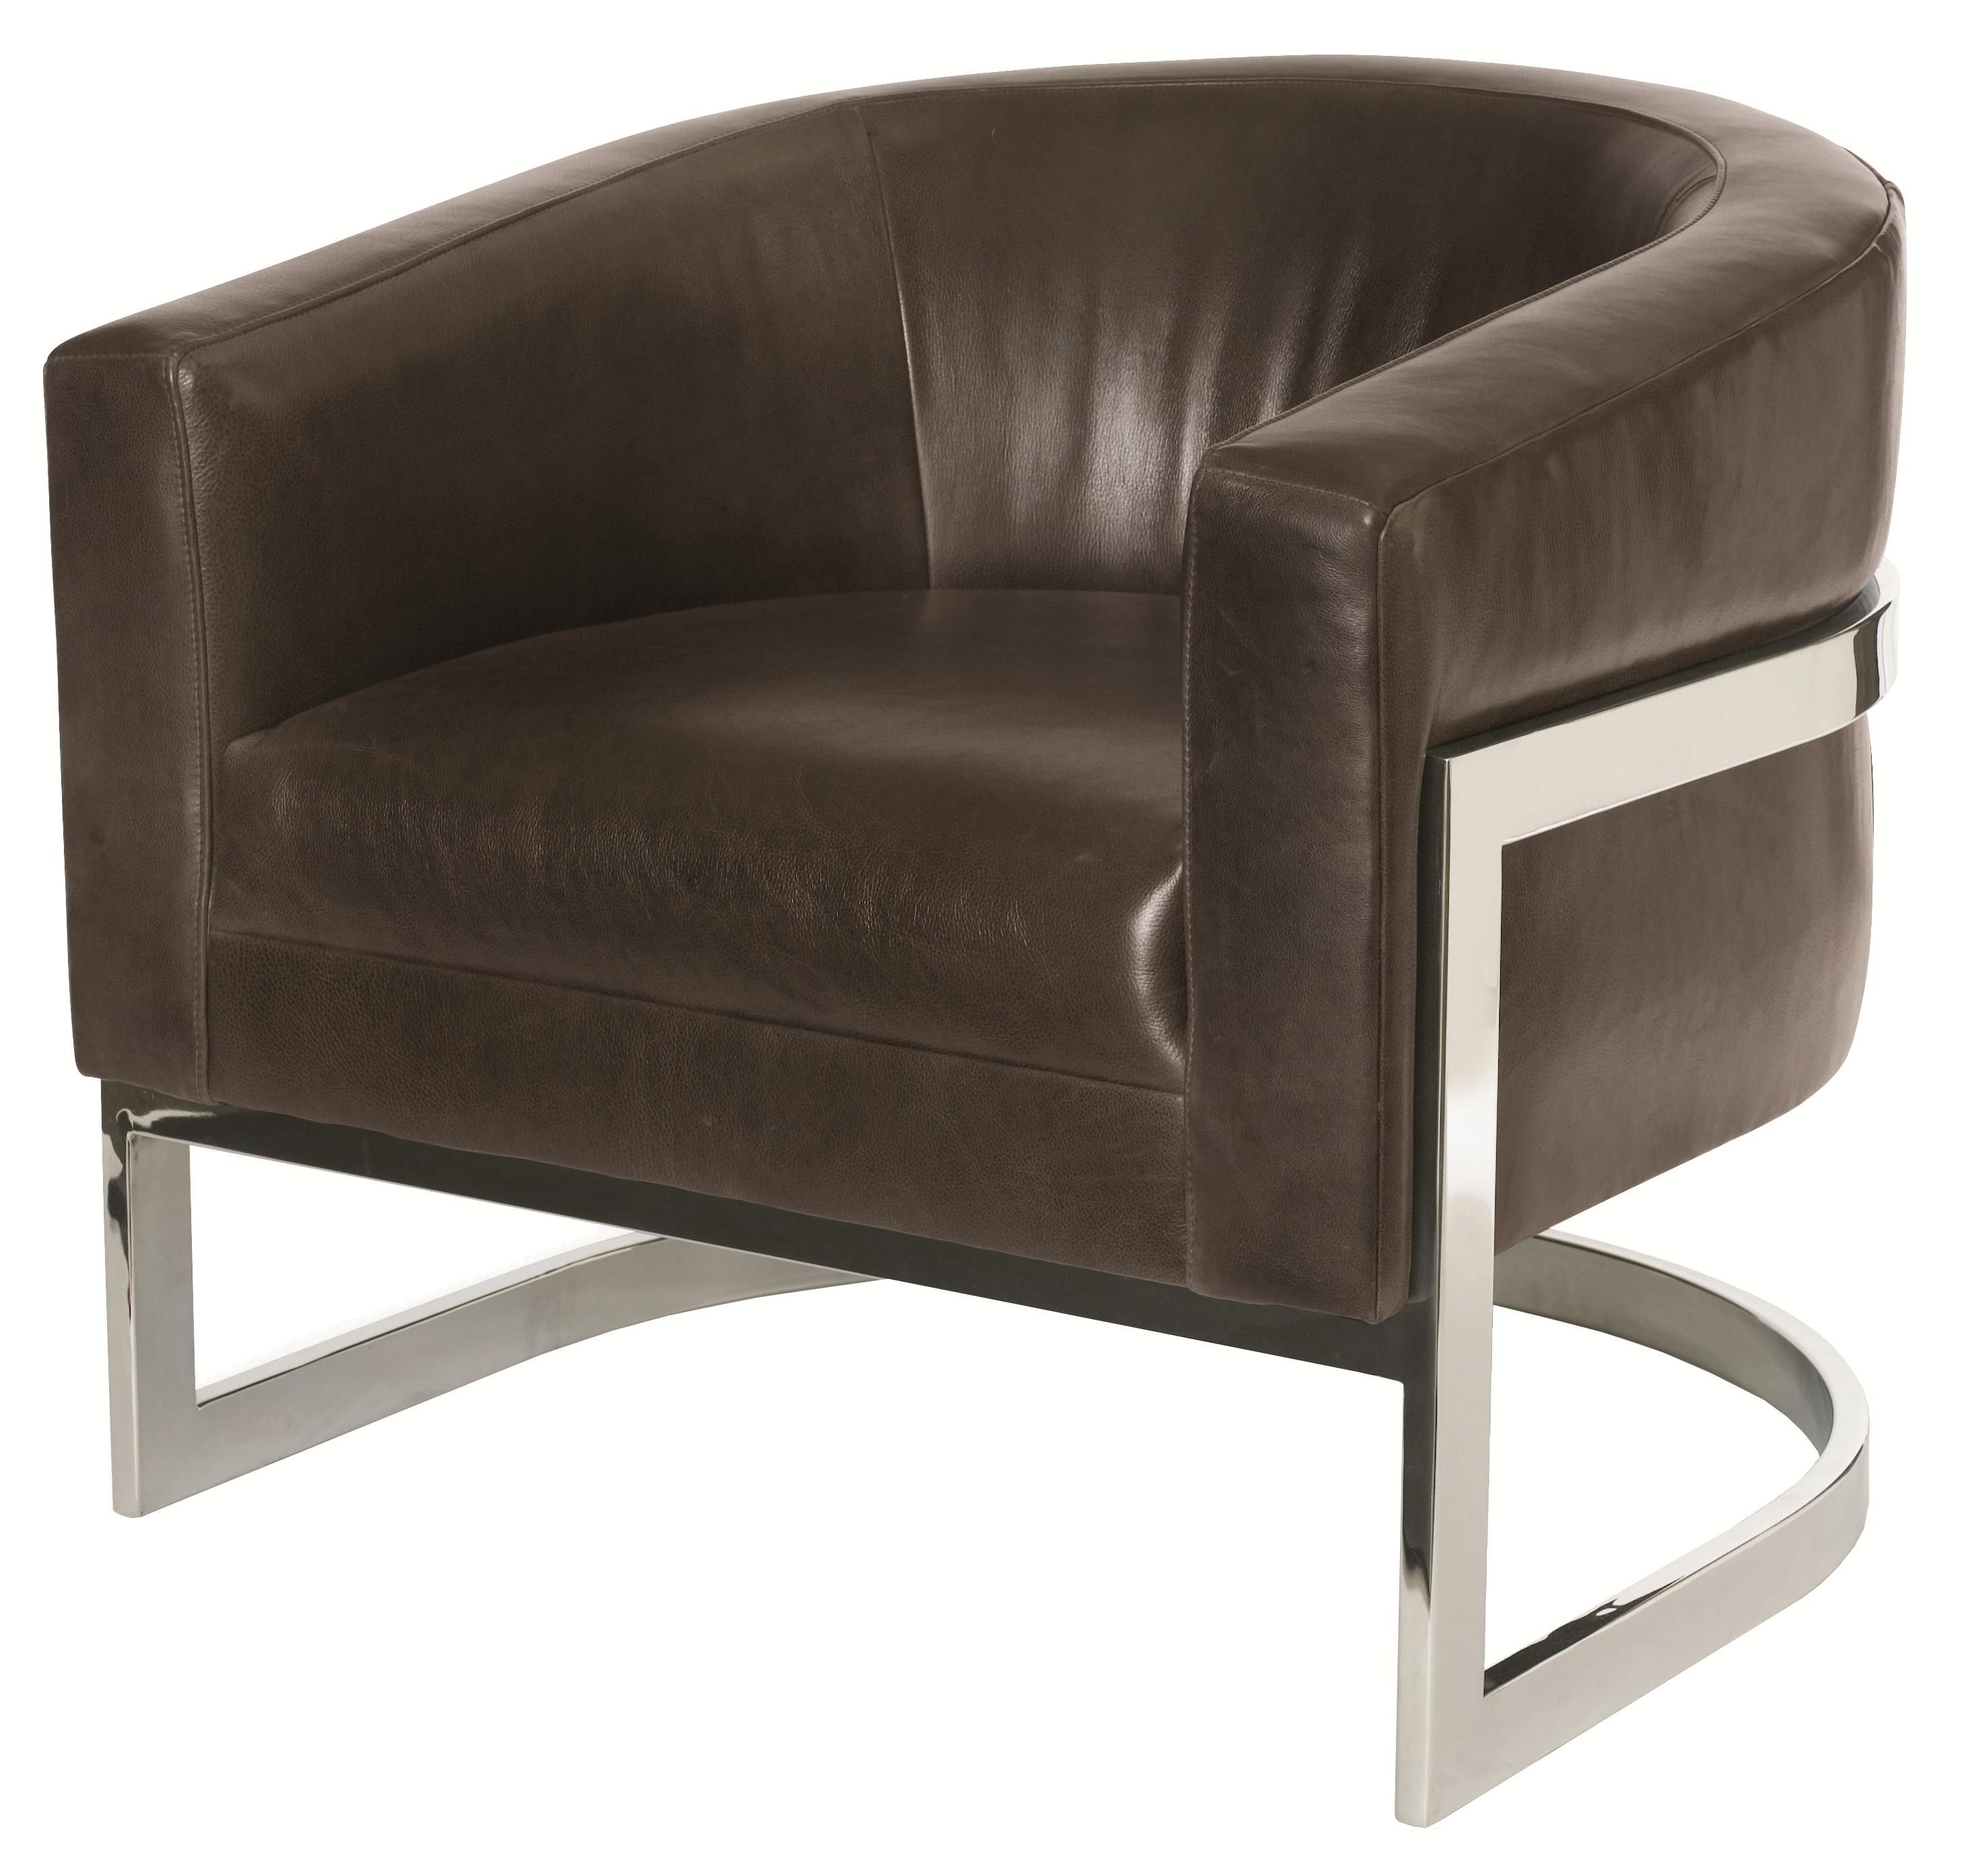 Upholstered Accents Callie Chair With Metal Legs And Modern Barrel